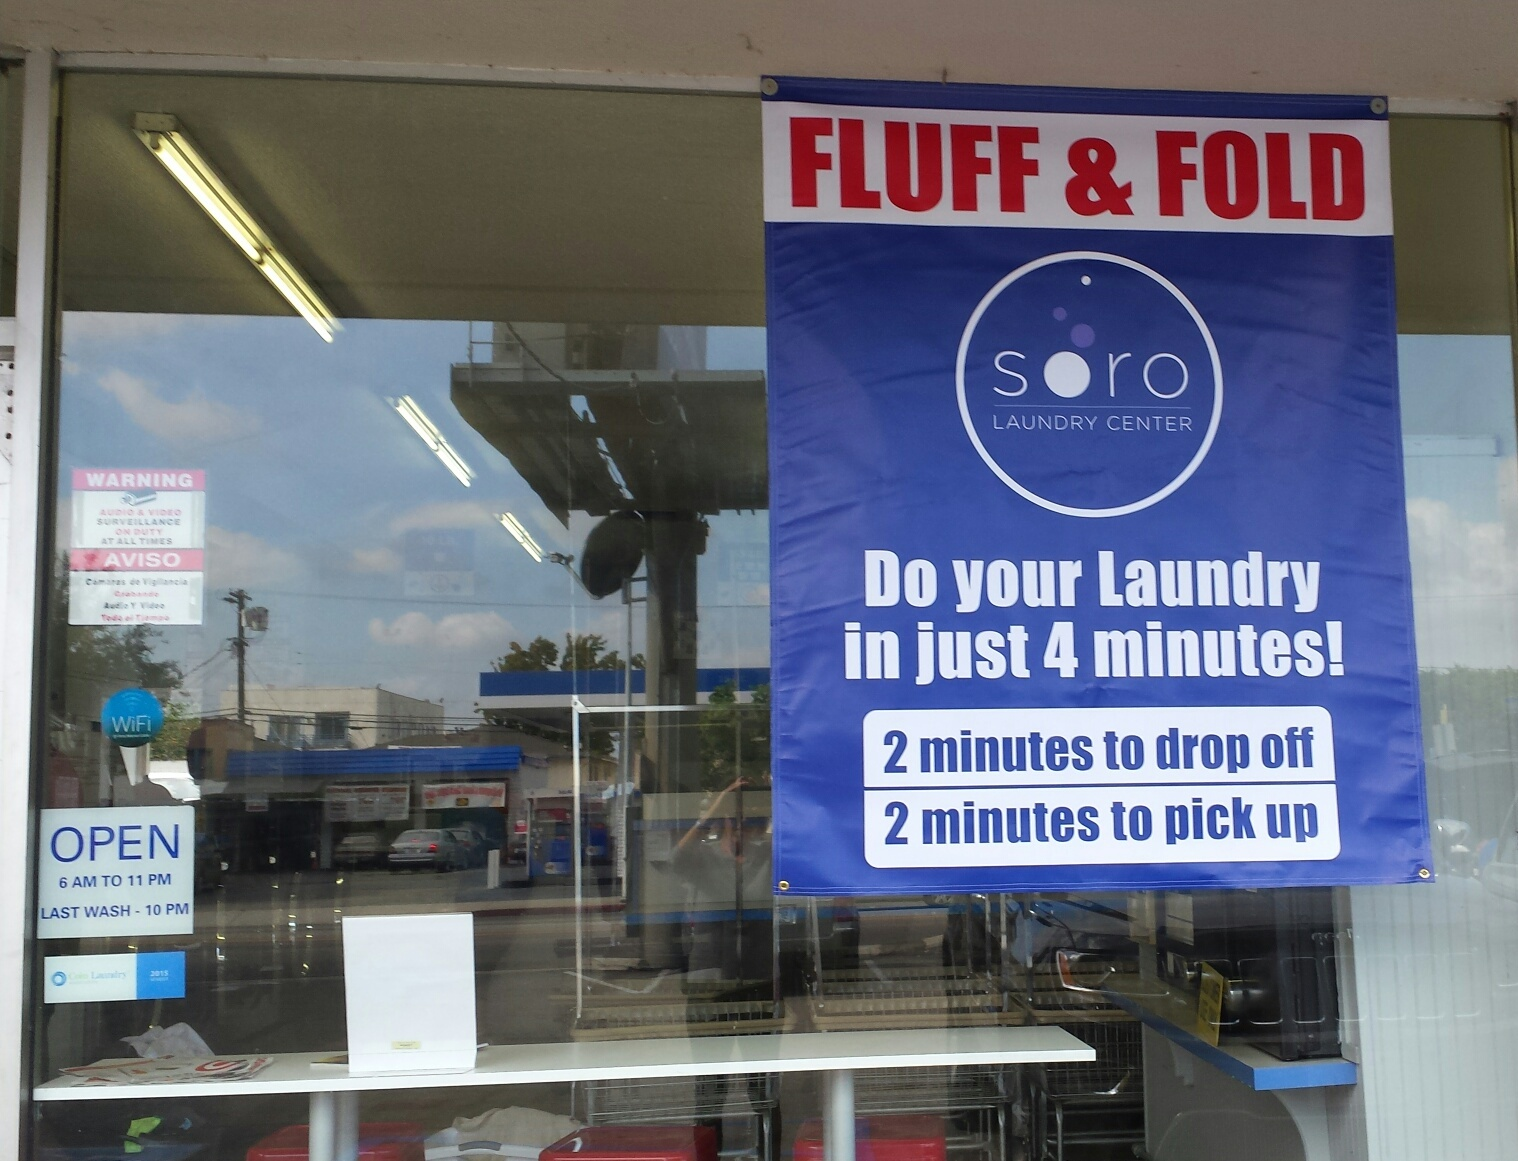 Fluff & Fold service saves you a ton of time!